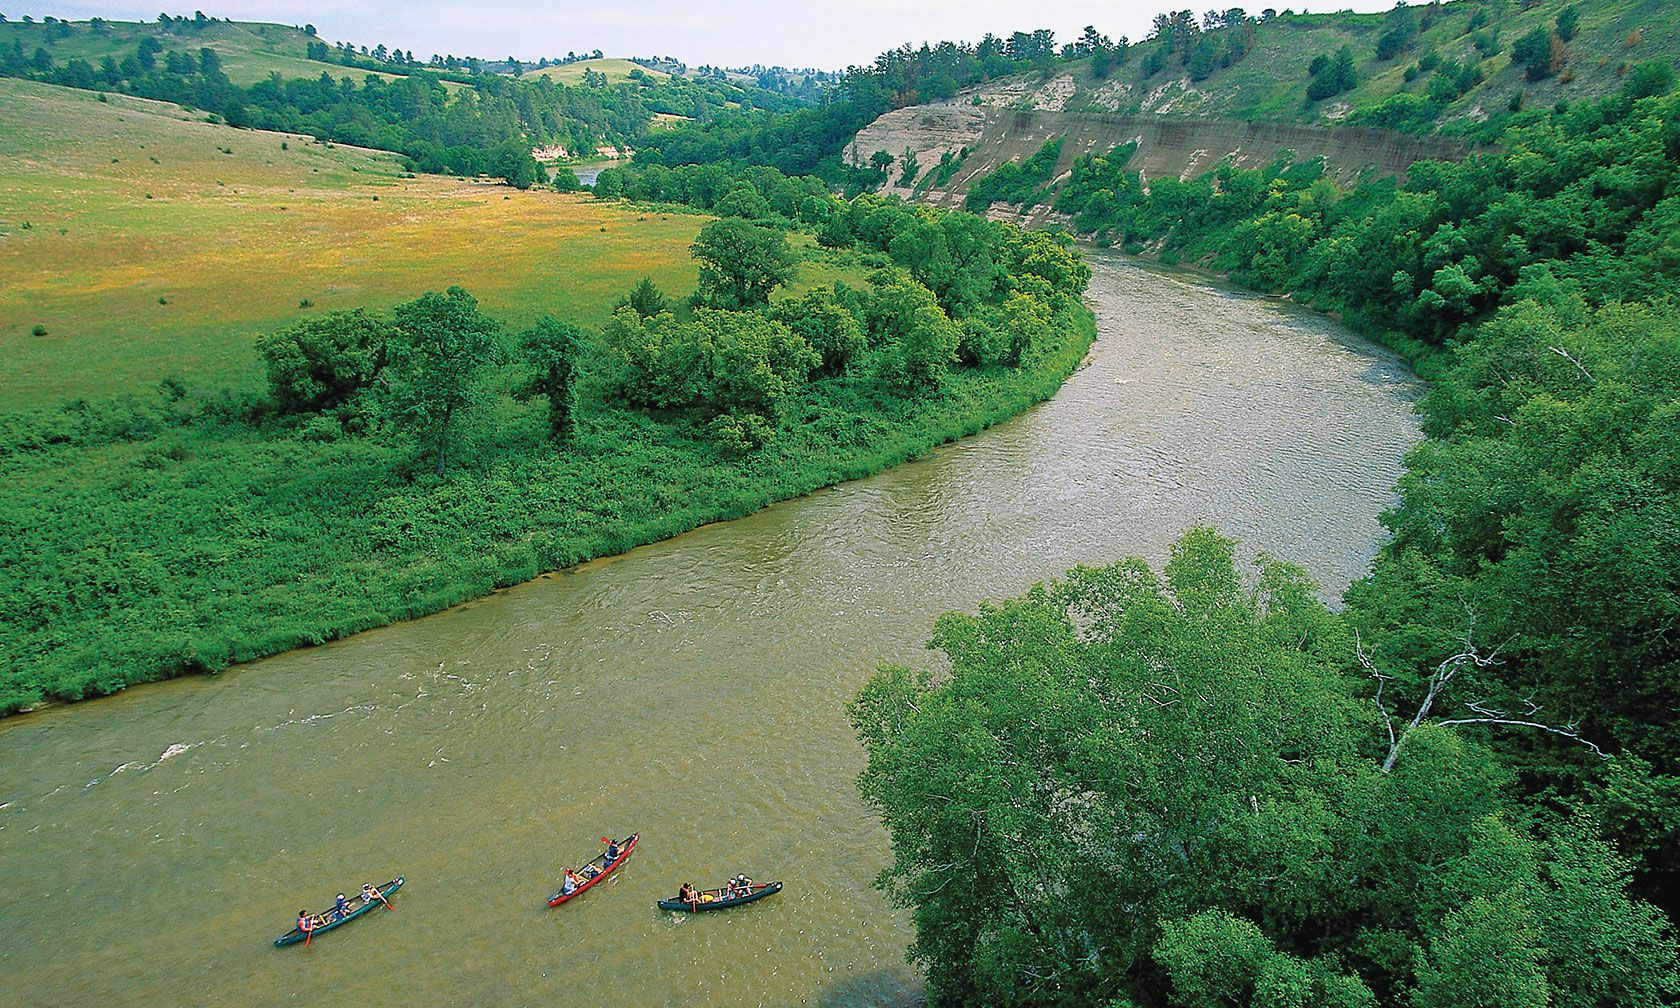 niobrara river valley with trees and kayaks true west magazine